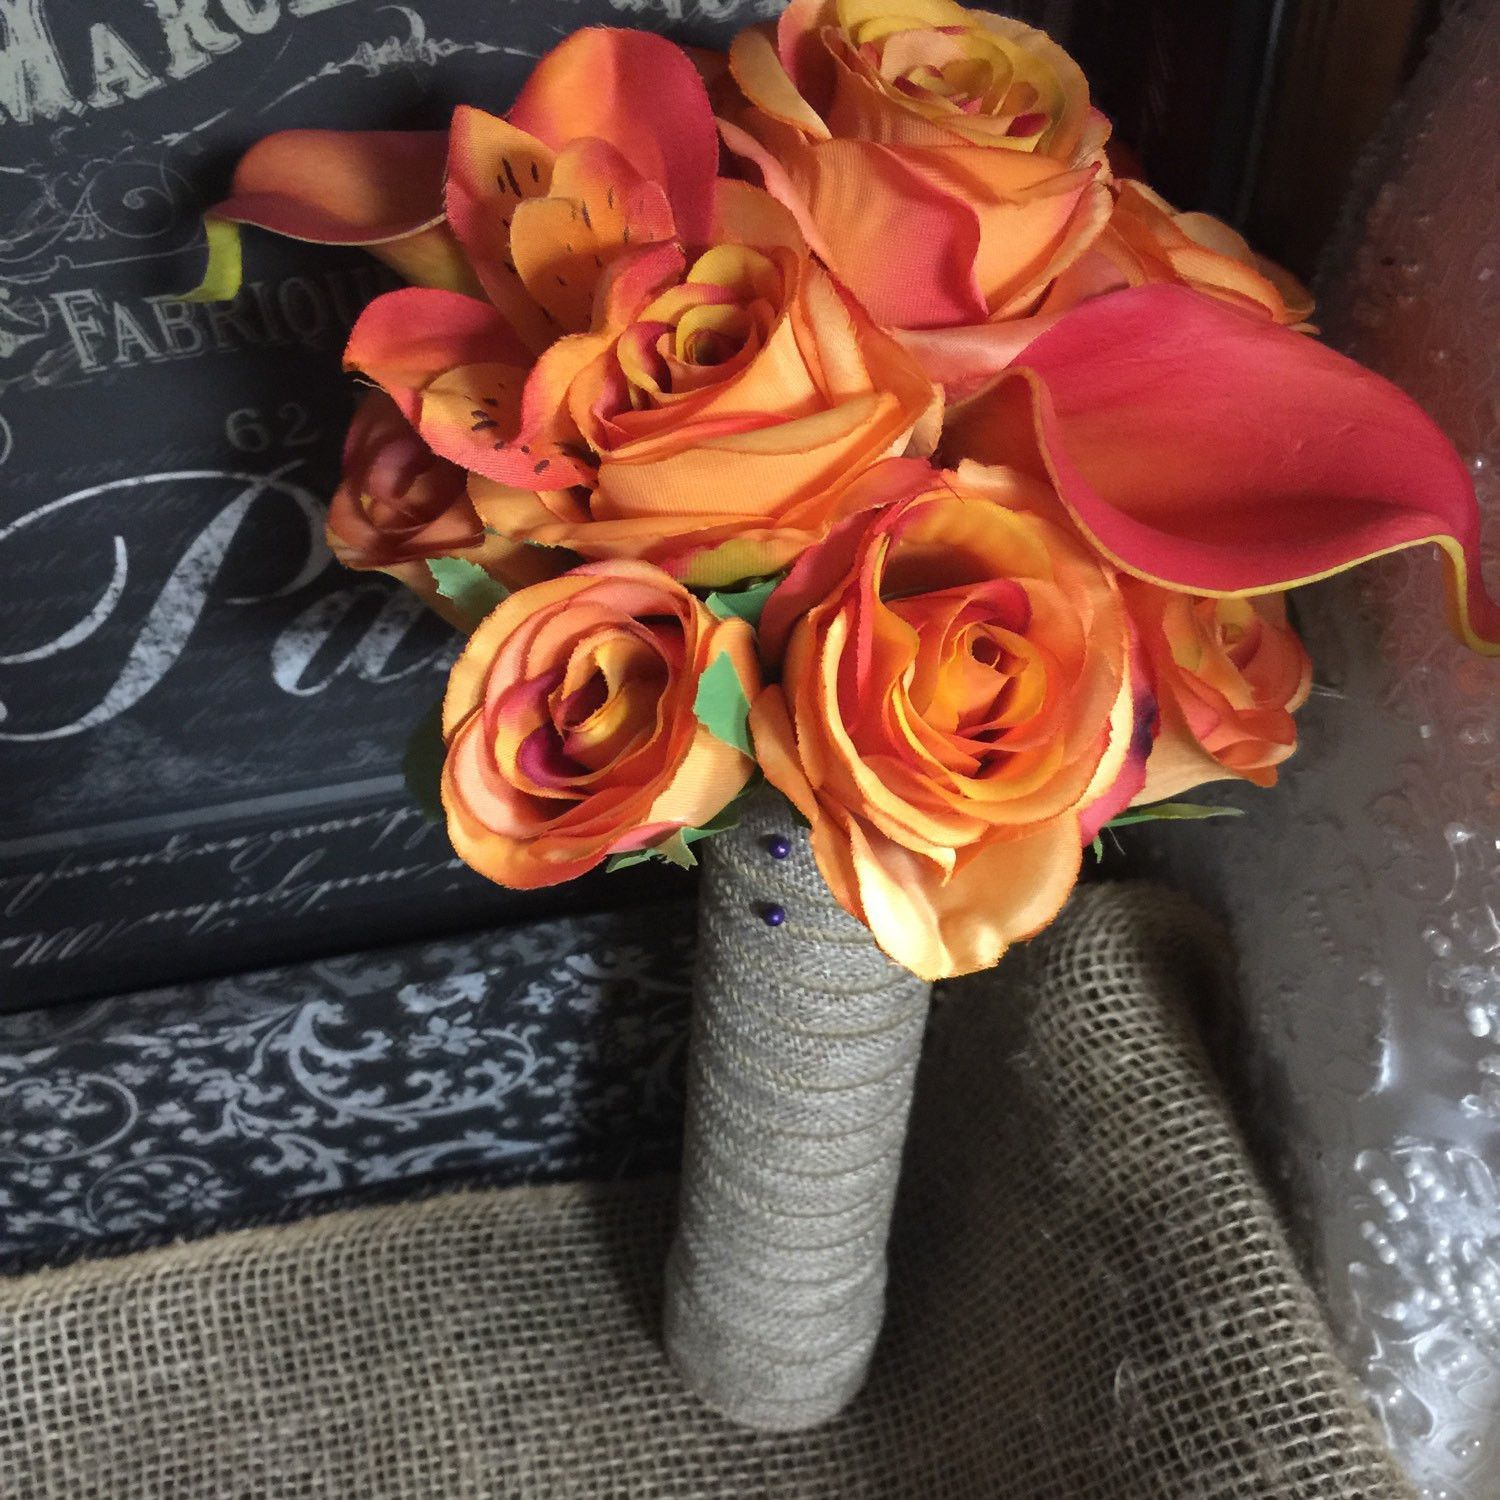 5 Piece Orange Rose Calla Lily Fall Wedding Bouquet Set Orange